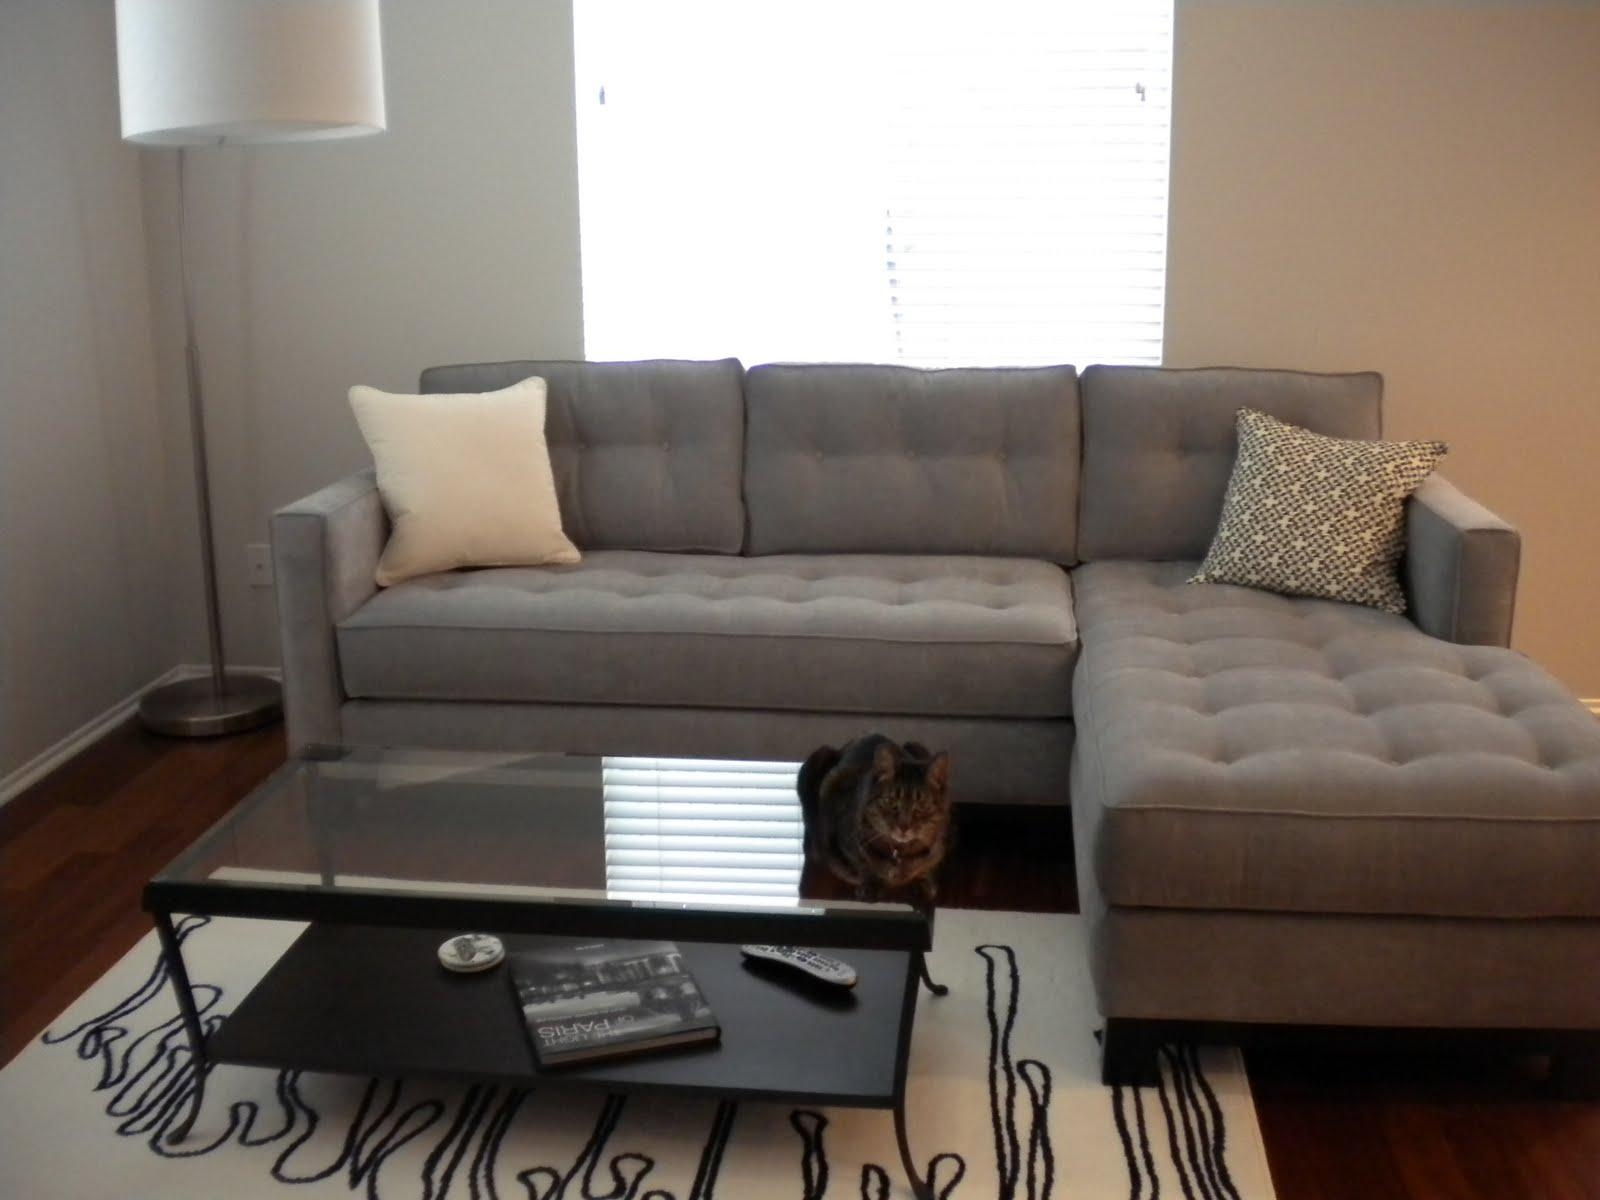 Furniture & Sofa: Best Sectional For Small Spaces | Small Space In Mini Sectional Sofas (Image 9 of 20)